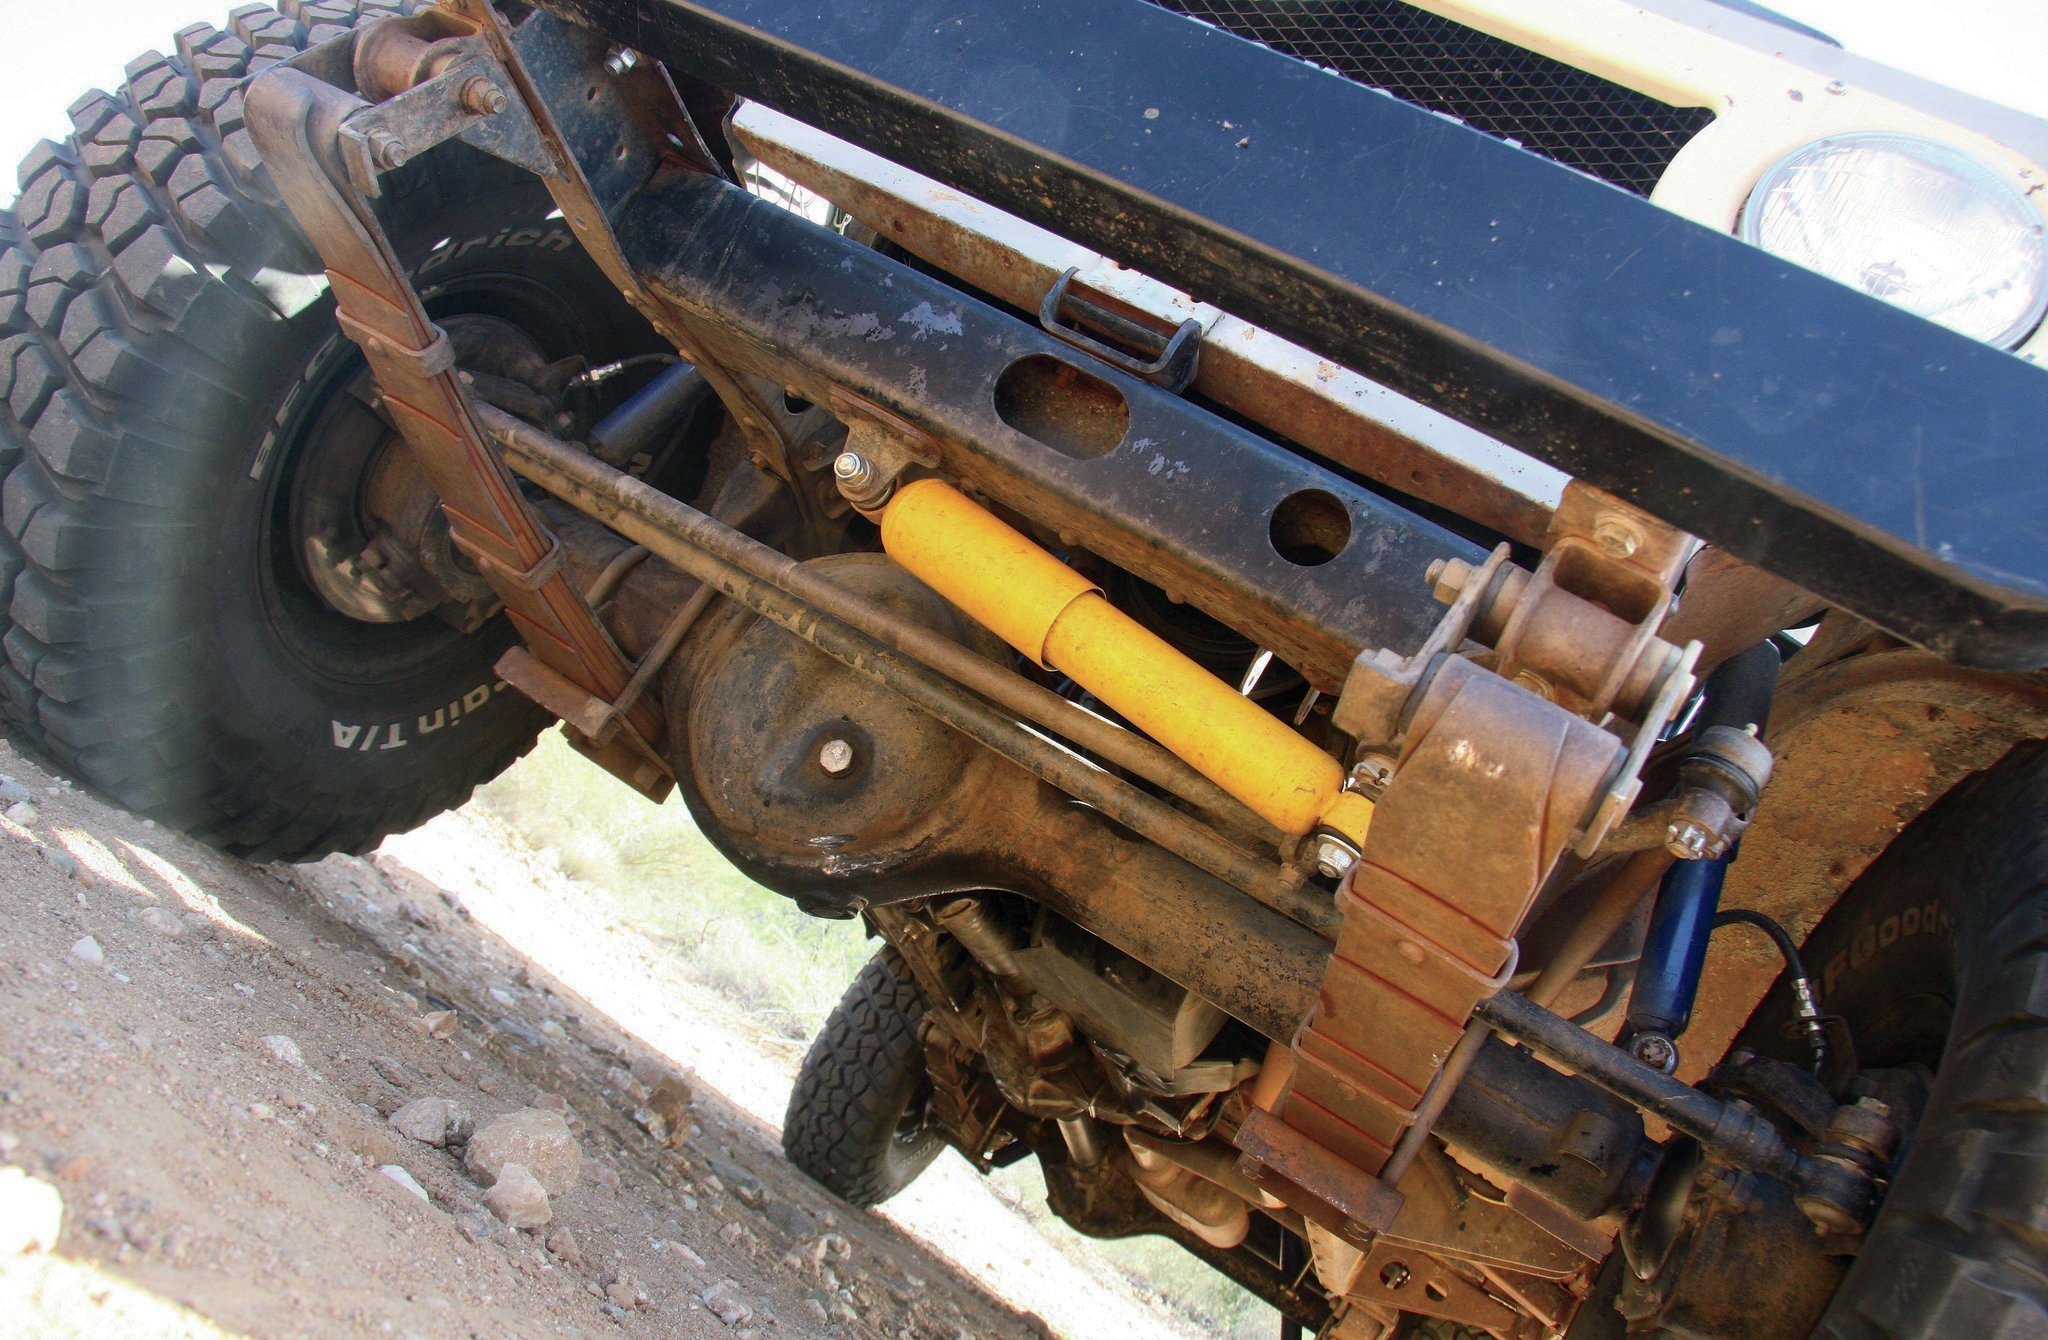 Under the front are the original factory leaf springs supplemented with a fresh pair of NAPA shocks and steering stabilizer. The aged springs are now supported by a '72 FJ55 axlehousing. The axle was rebuilt and the outer components replaced with stouter mini-truck parts, including the manual locking hubs. Larger 4Runner brake calipers and vented rotors were installed to increase braking power. Gears are 4.10s for a good mix of off-road and street performance.